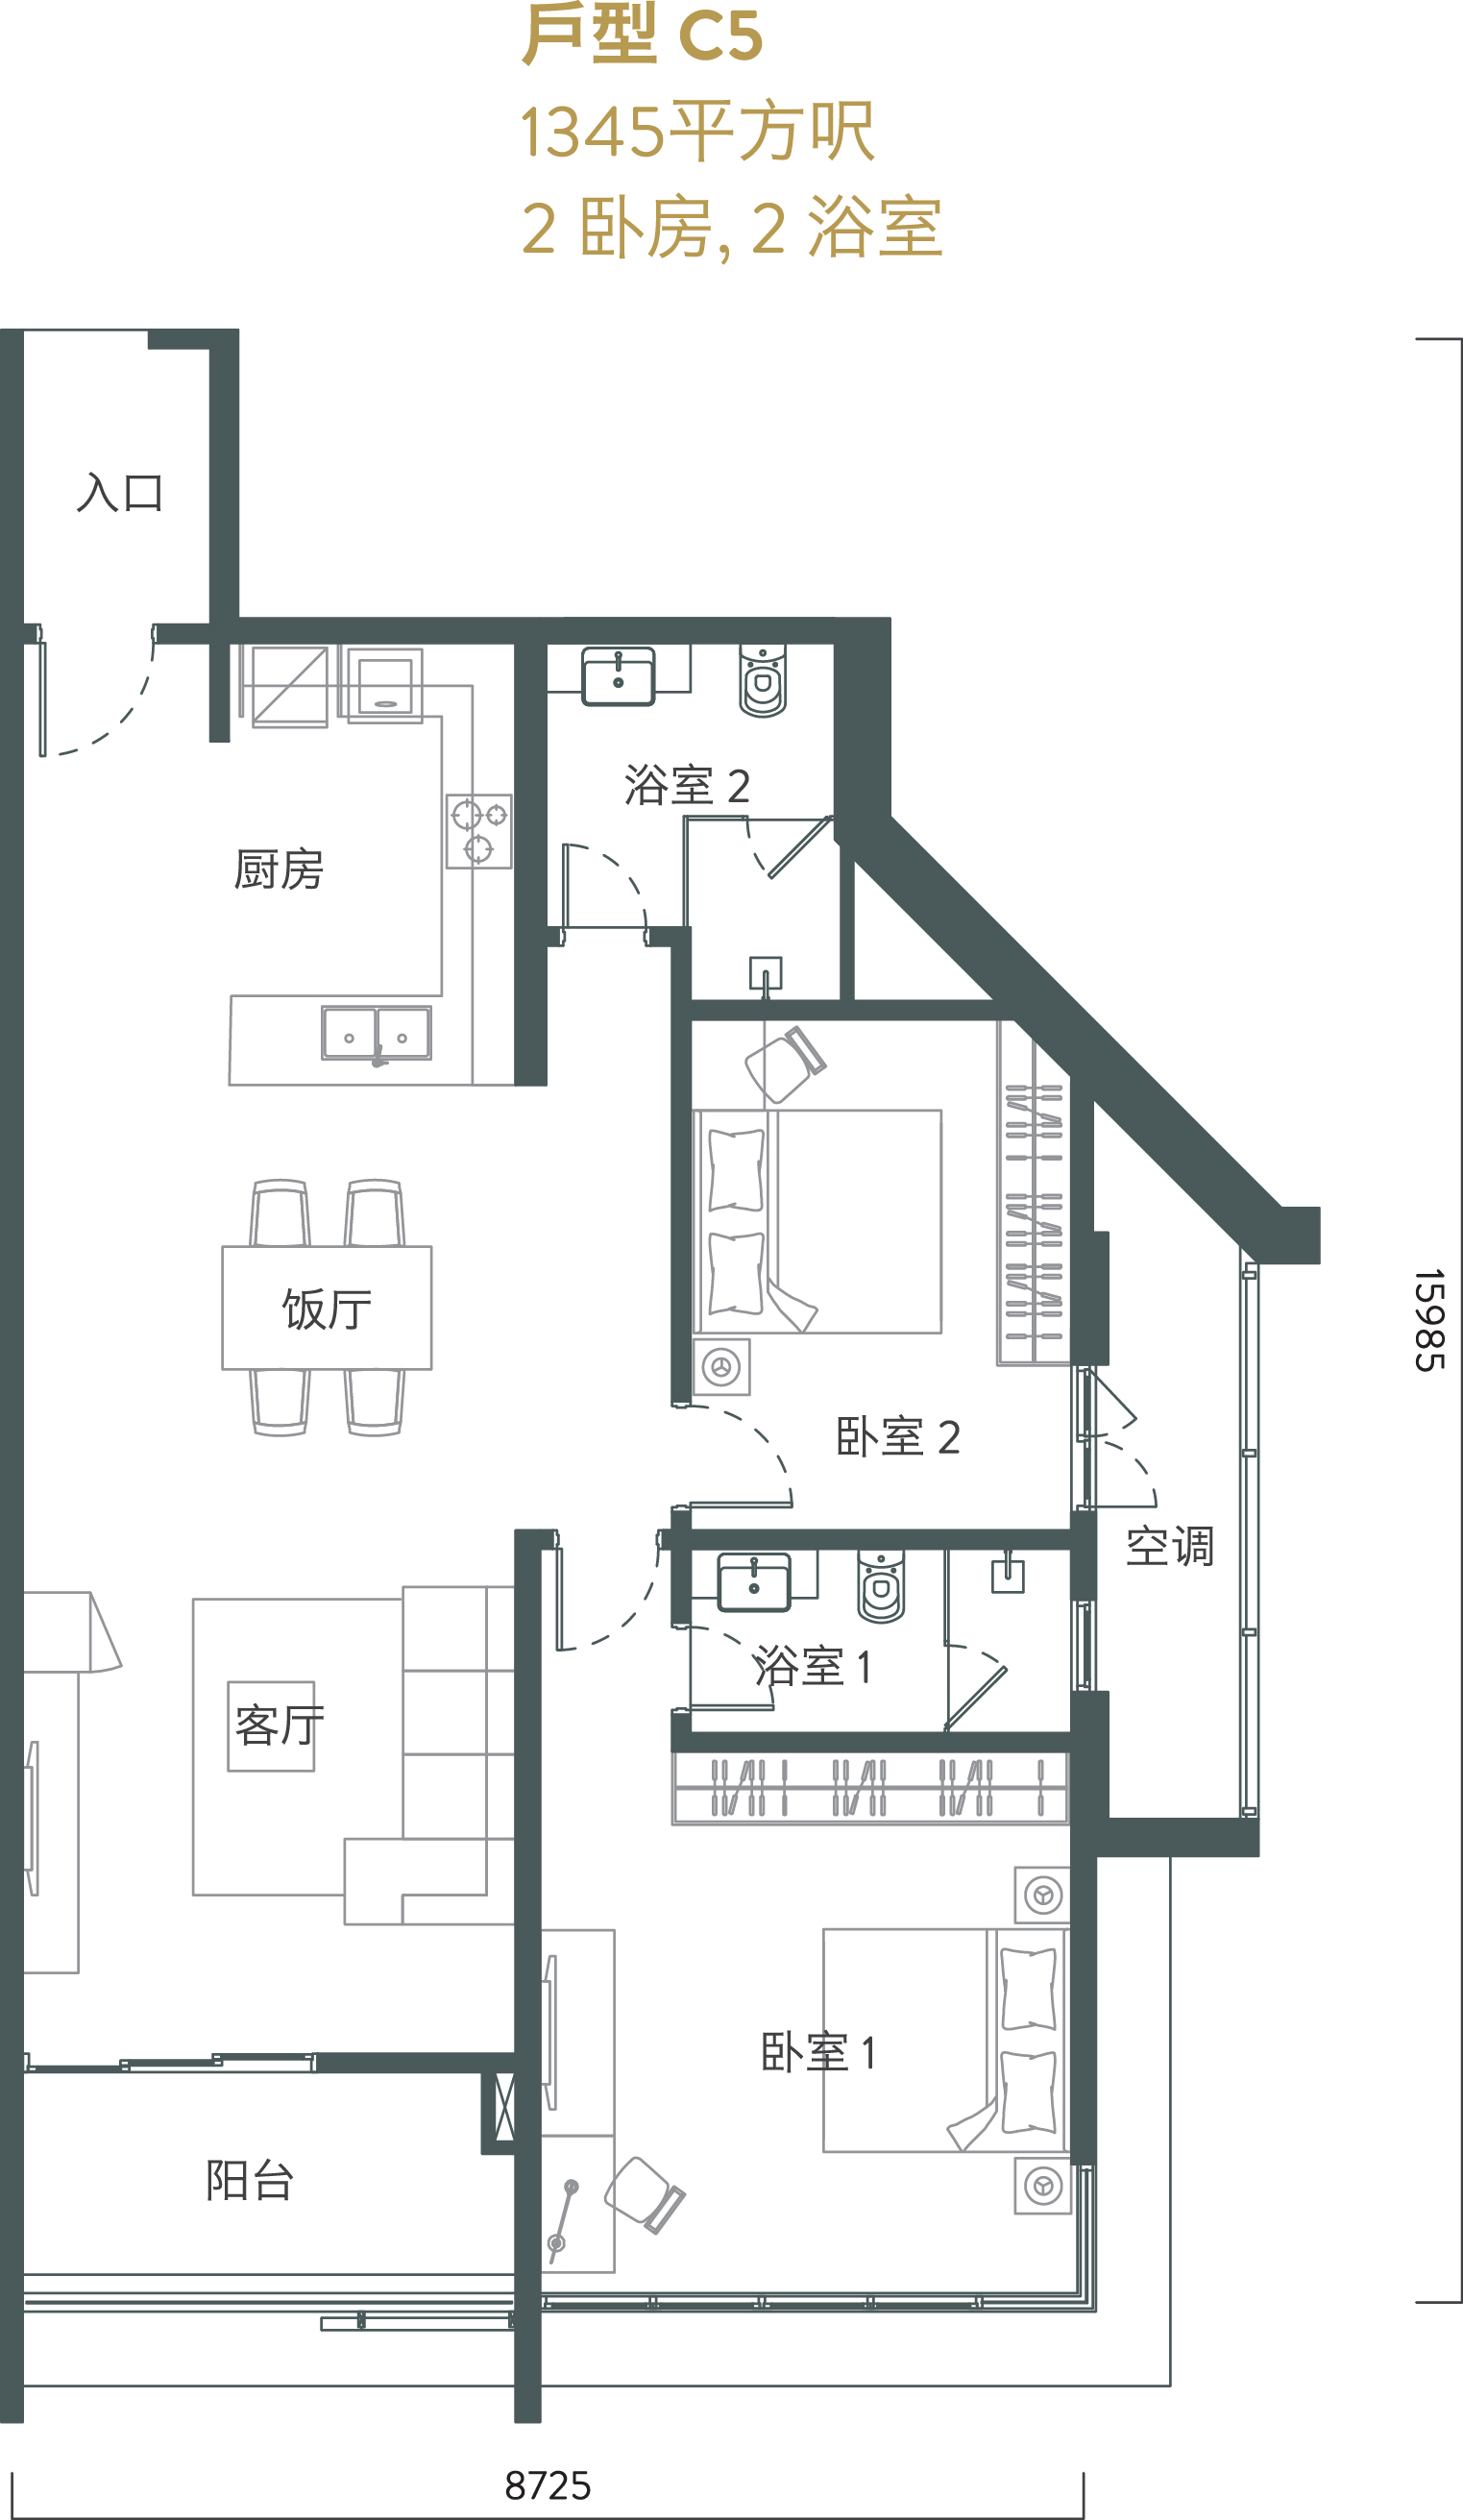 Quill Residences C5單位